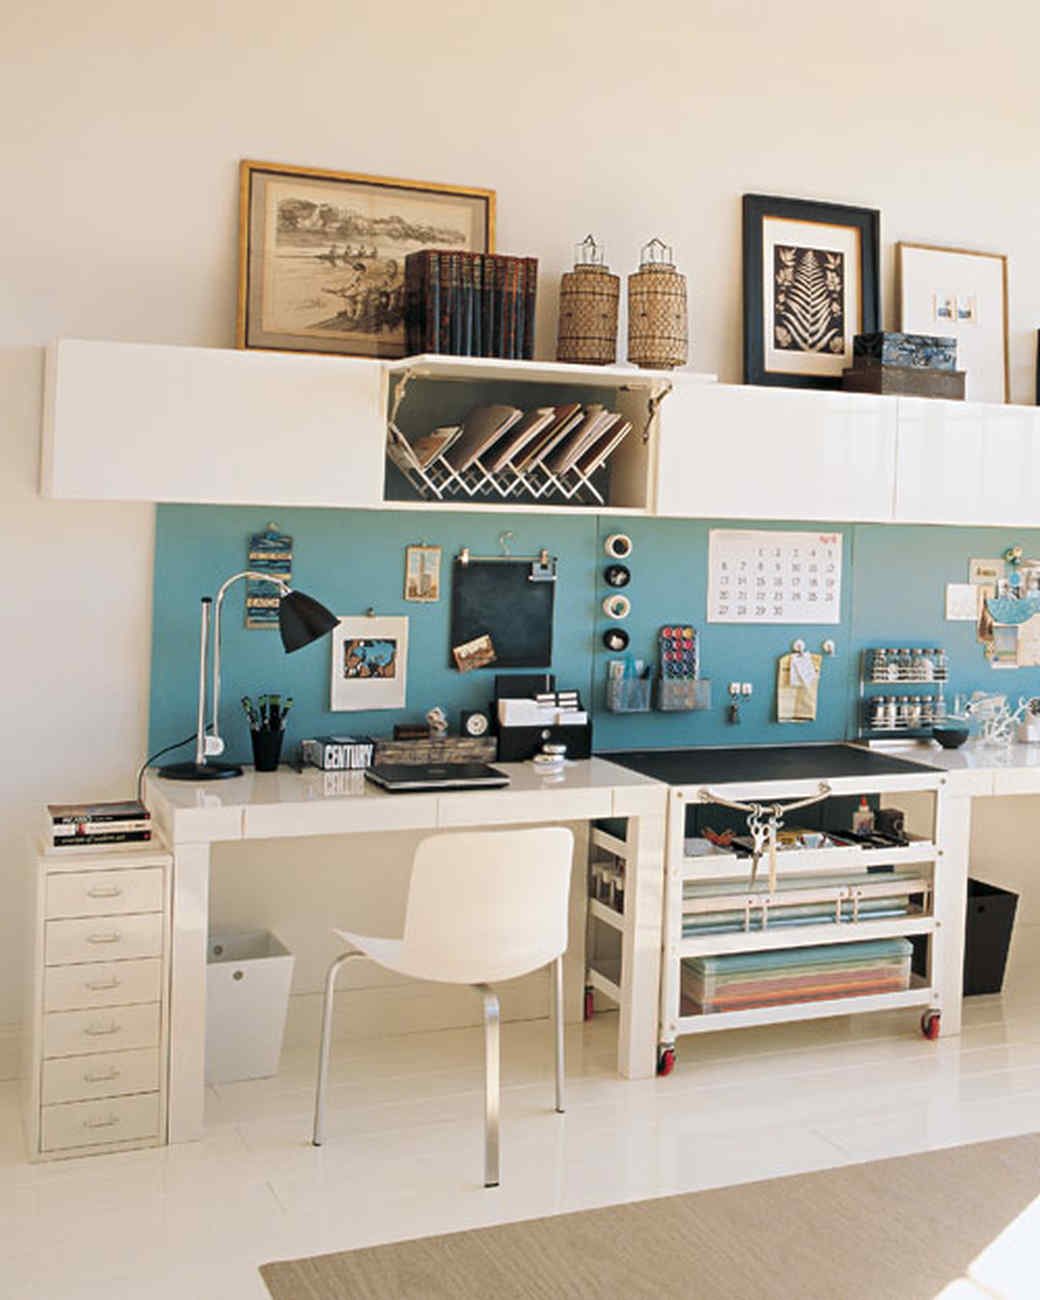 Clever Office Shared Space & Clever Office: Shared Space | Martha Stewart